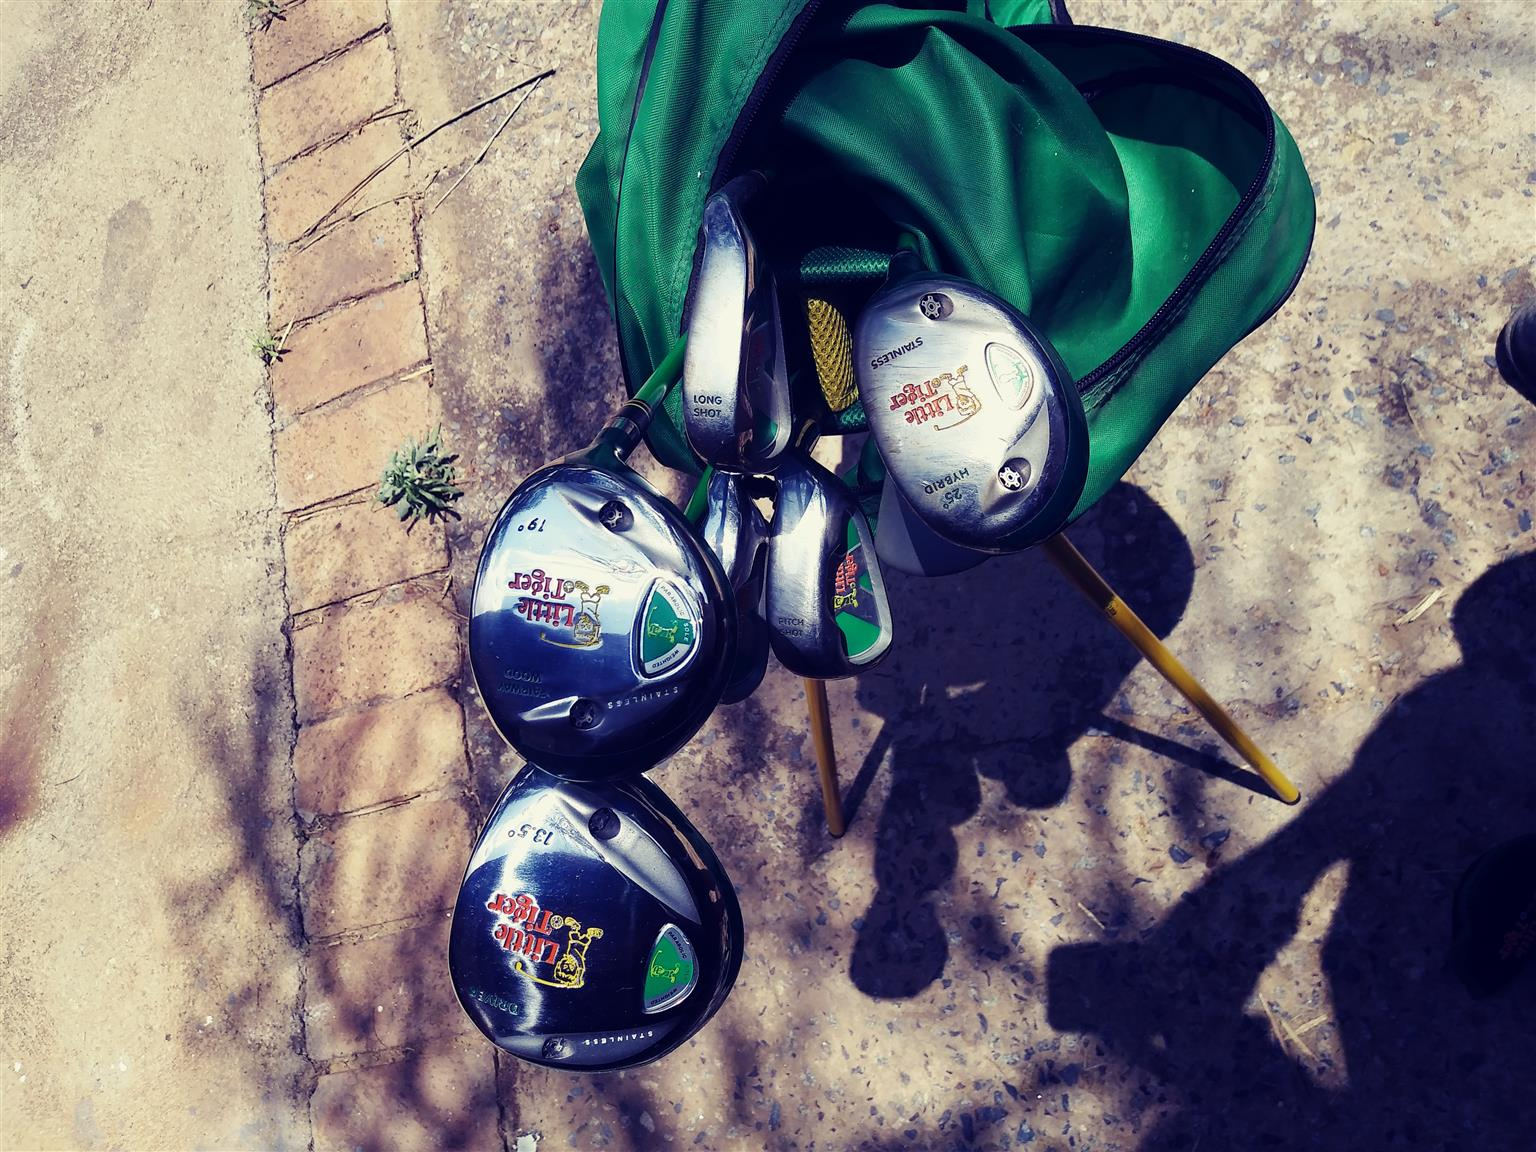 LITTLE TIGER COMPLETE GOLF SET WITH CARRY BAG COMPLETE SET NEVER BEEN USED